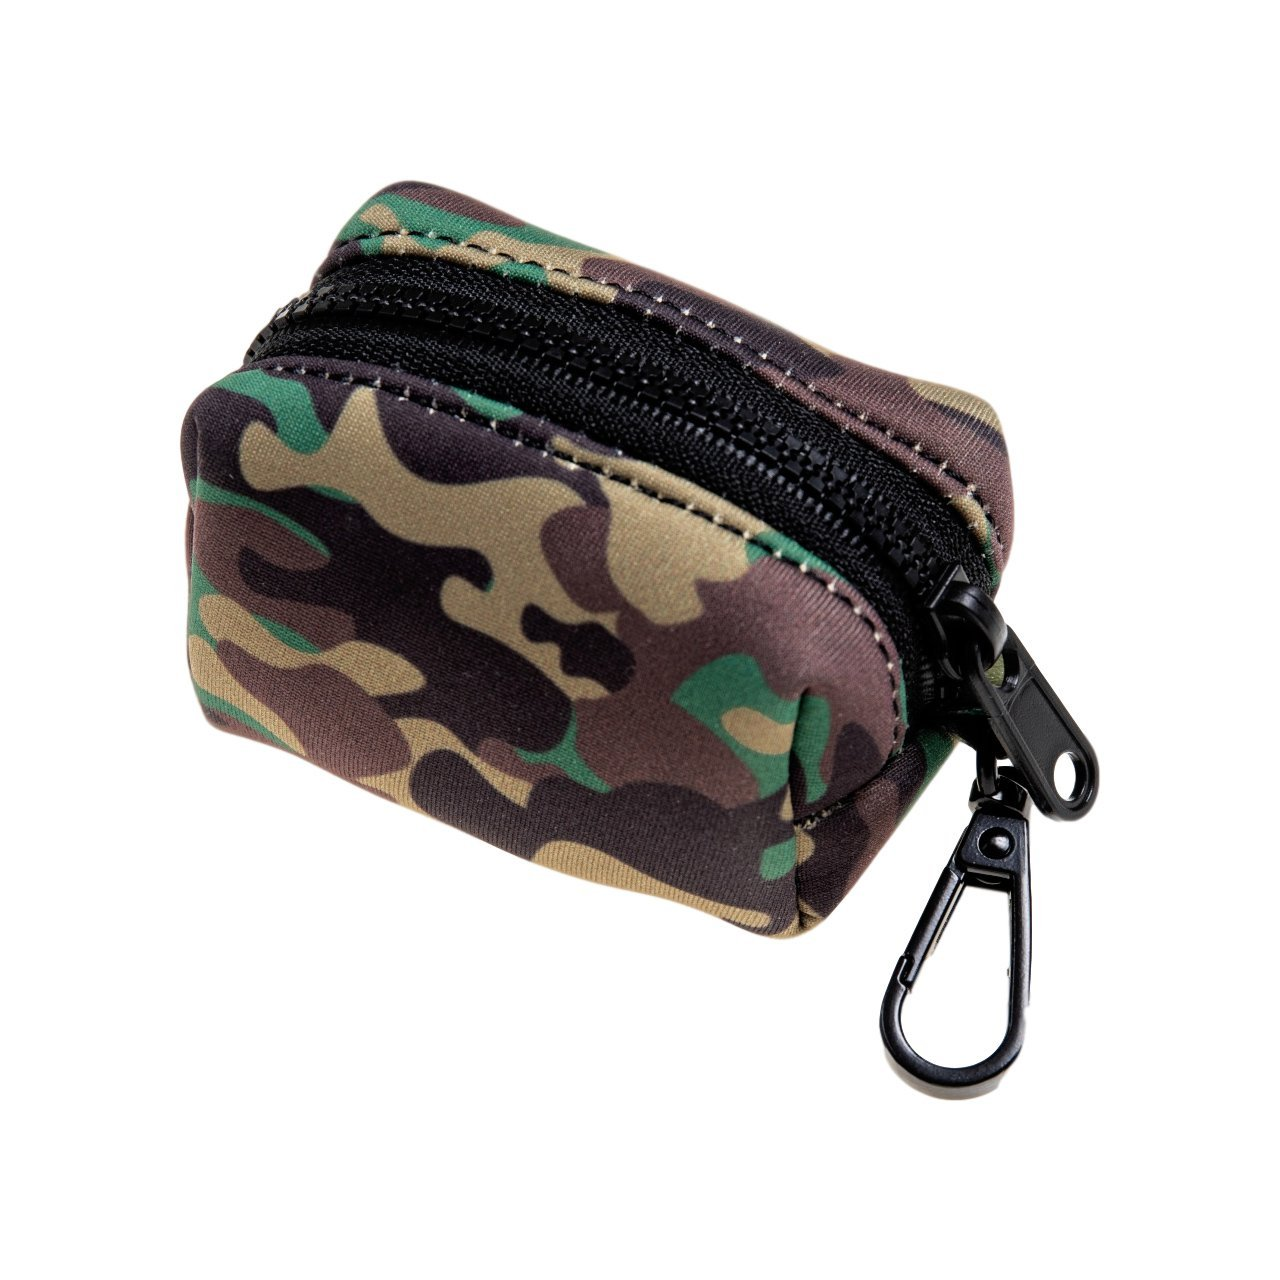 Camo Poop Bag Holder - Beast & Buckle